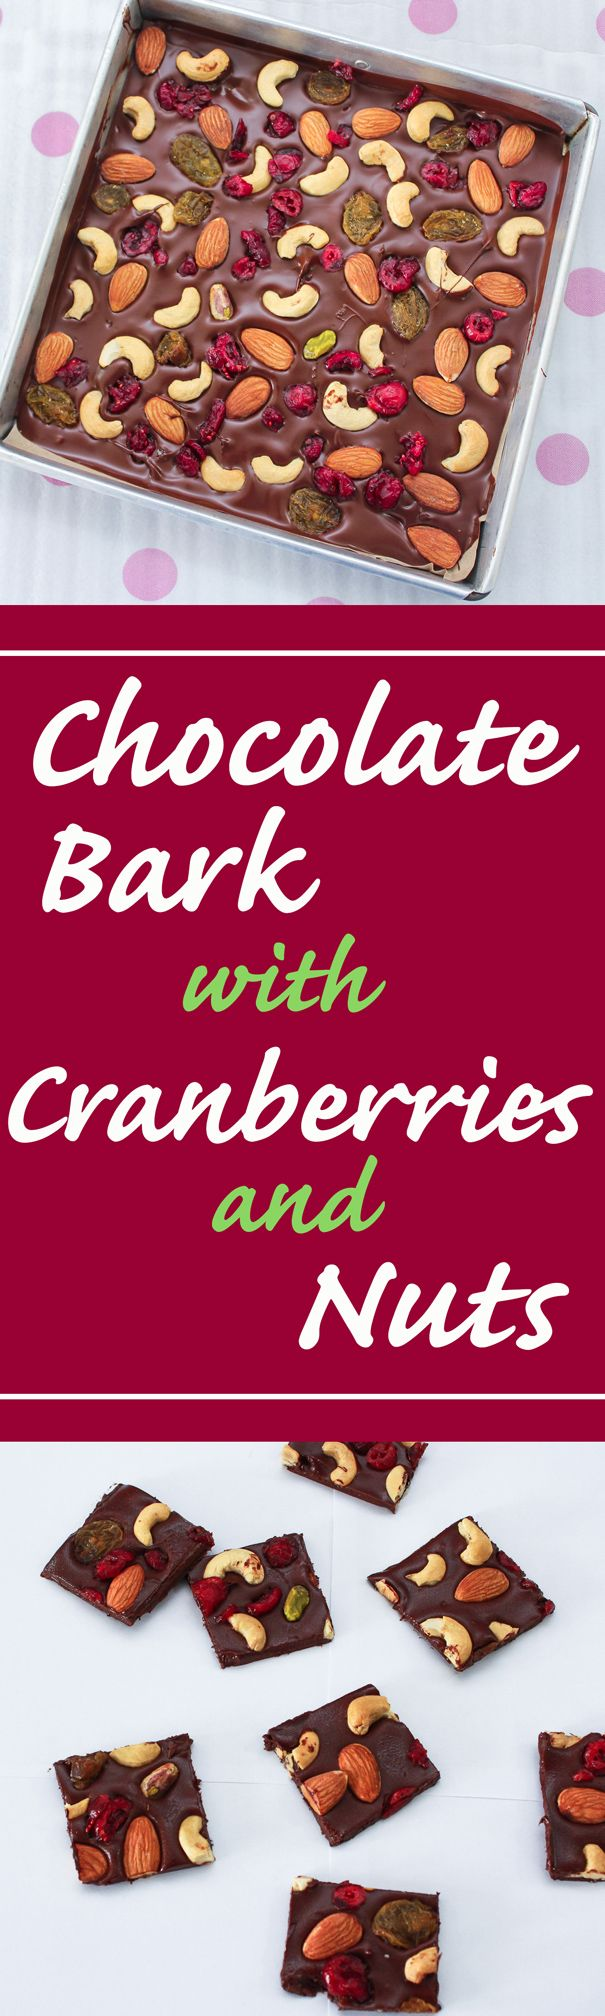 These Chocolate Bark with Cranberries and Nuts are yummy, super easy to make, absolute fun and a great make ahead. They make the perfect homemade gifts as well.